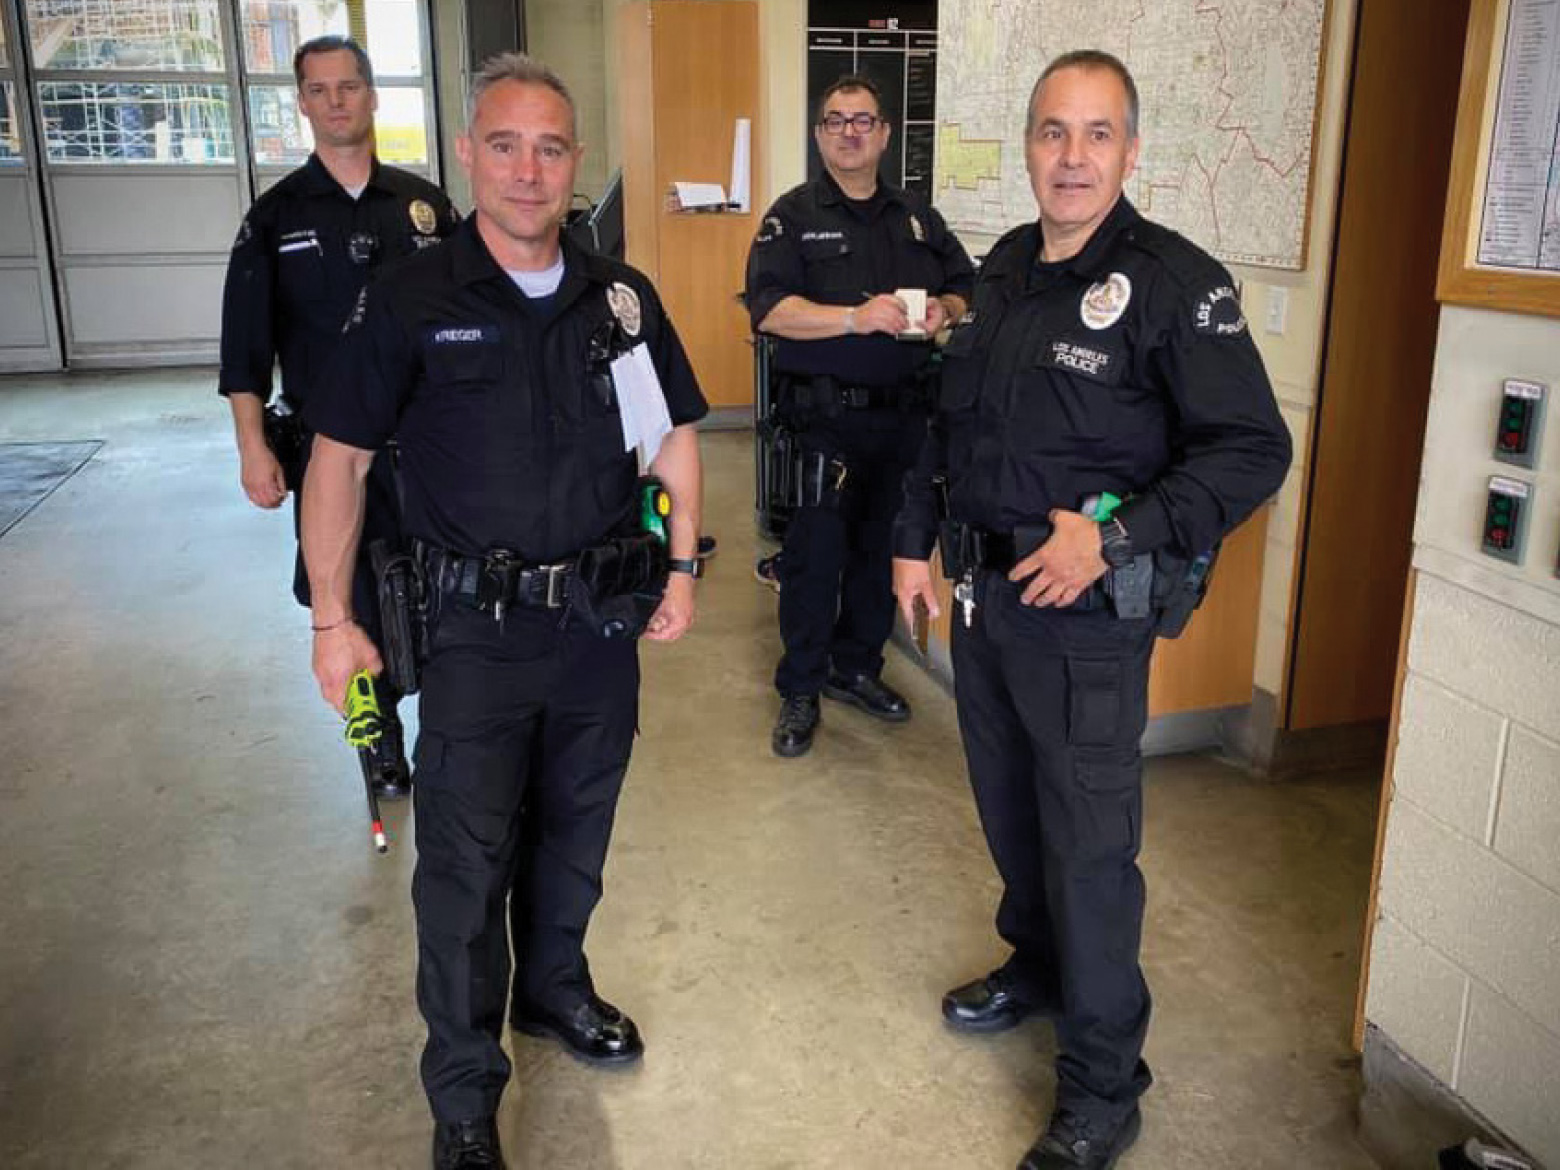 lapd-reserves-go-above-and-beyond-part-two-22